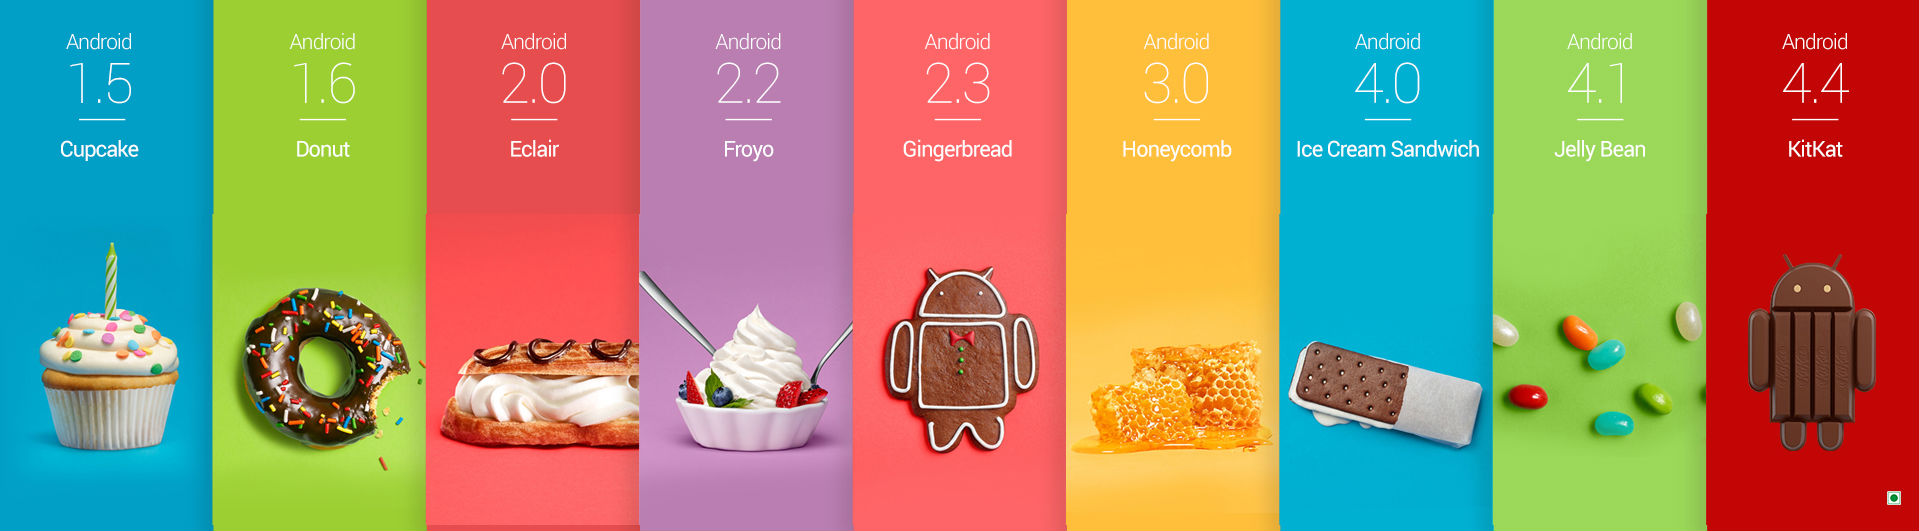 Android Timeline